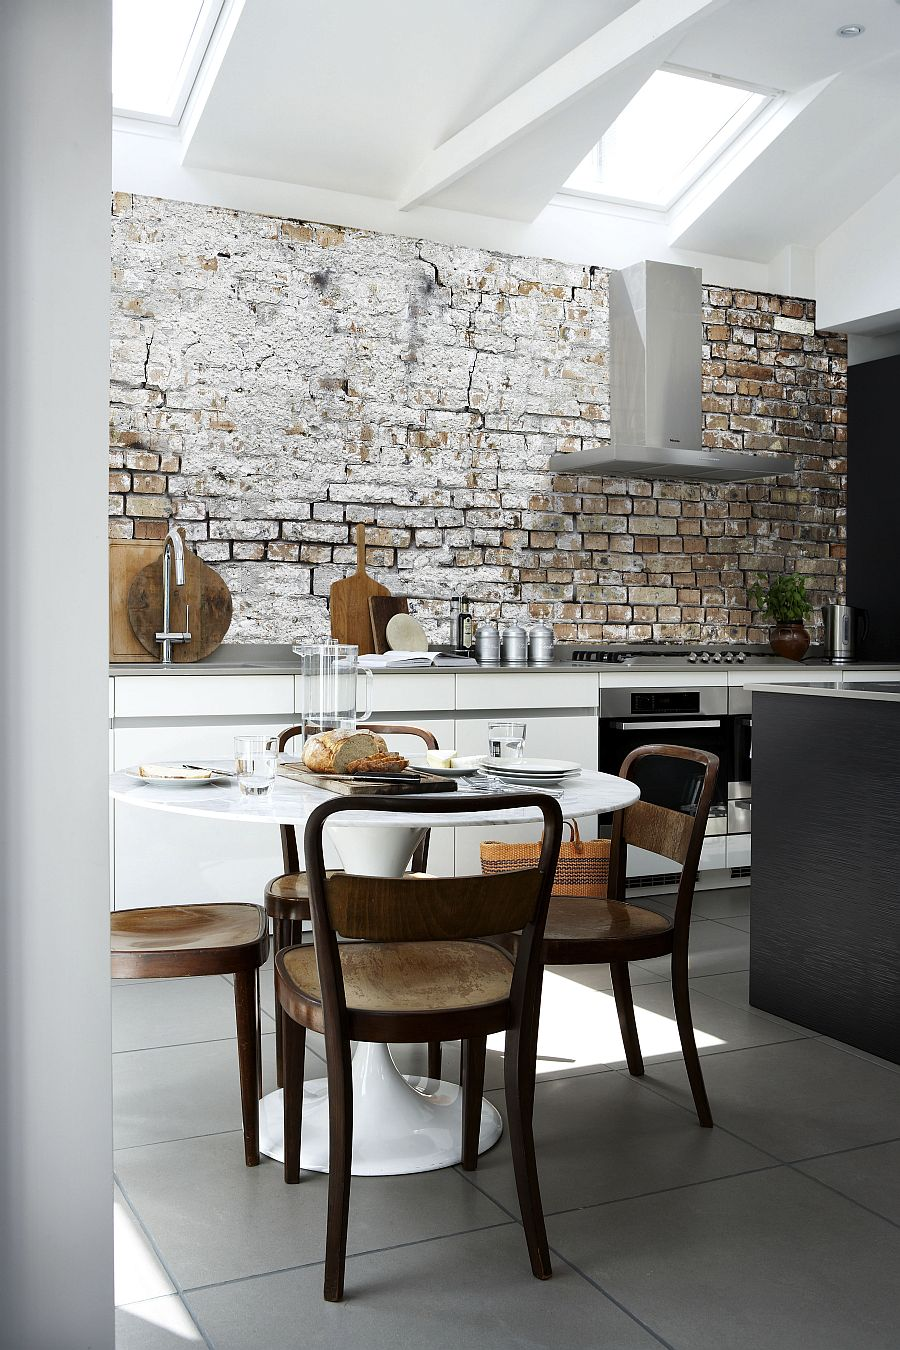 Aged Brick Wall Wallpaper In The Kitchen Combines Two Hot Design 900x1350